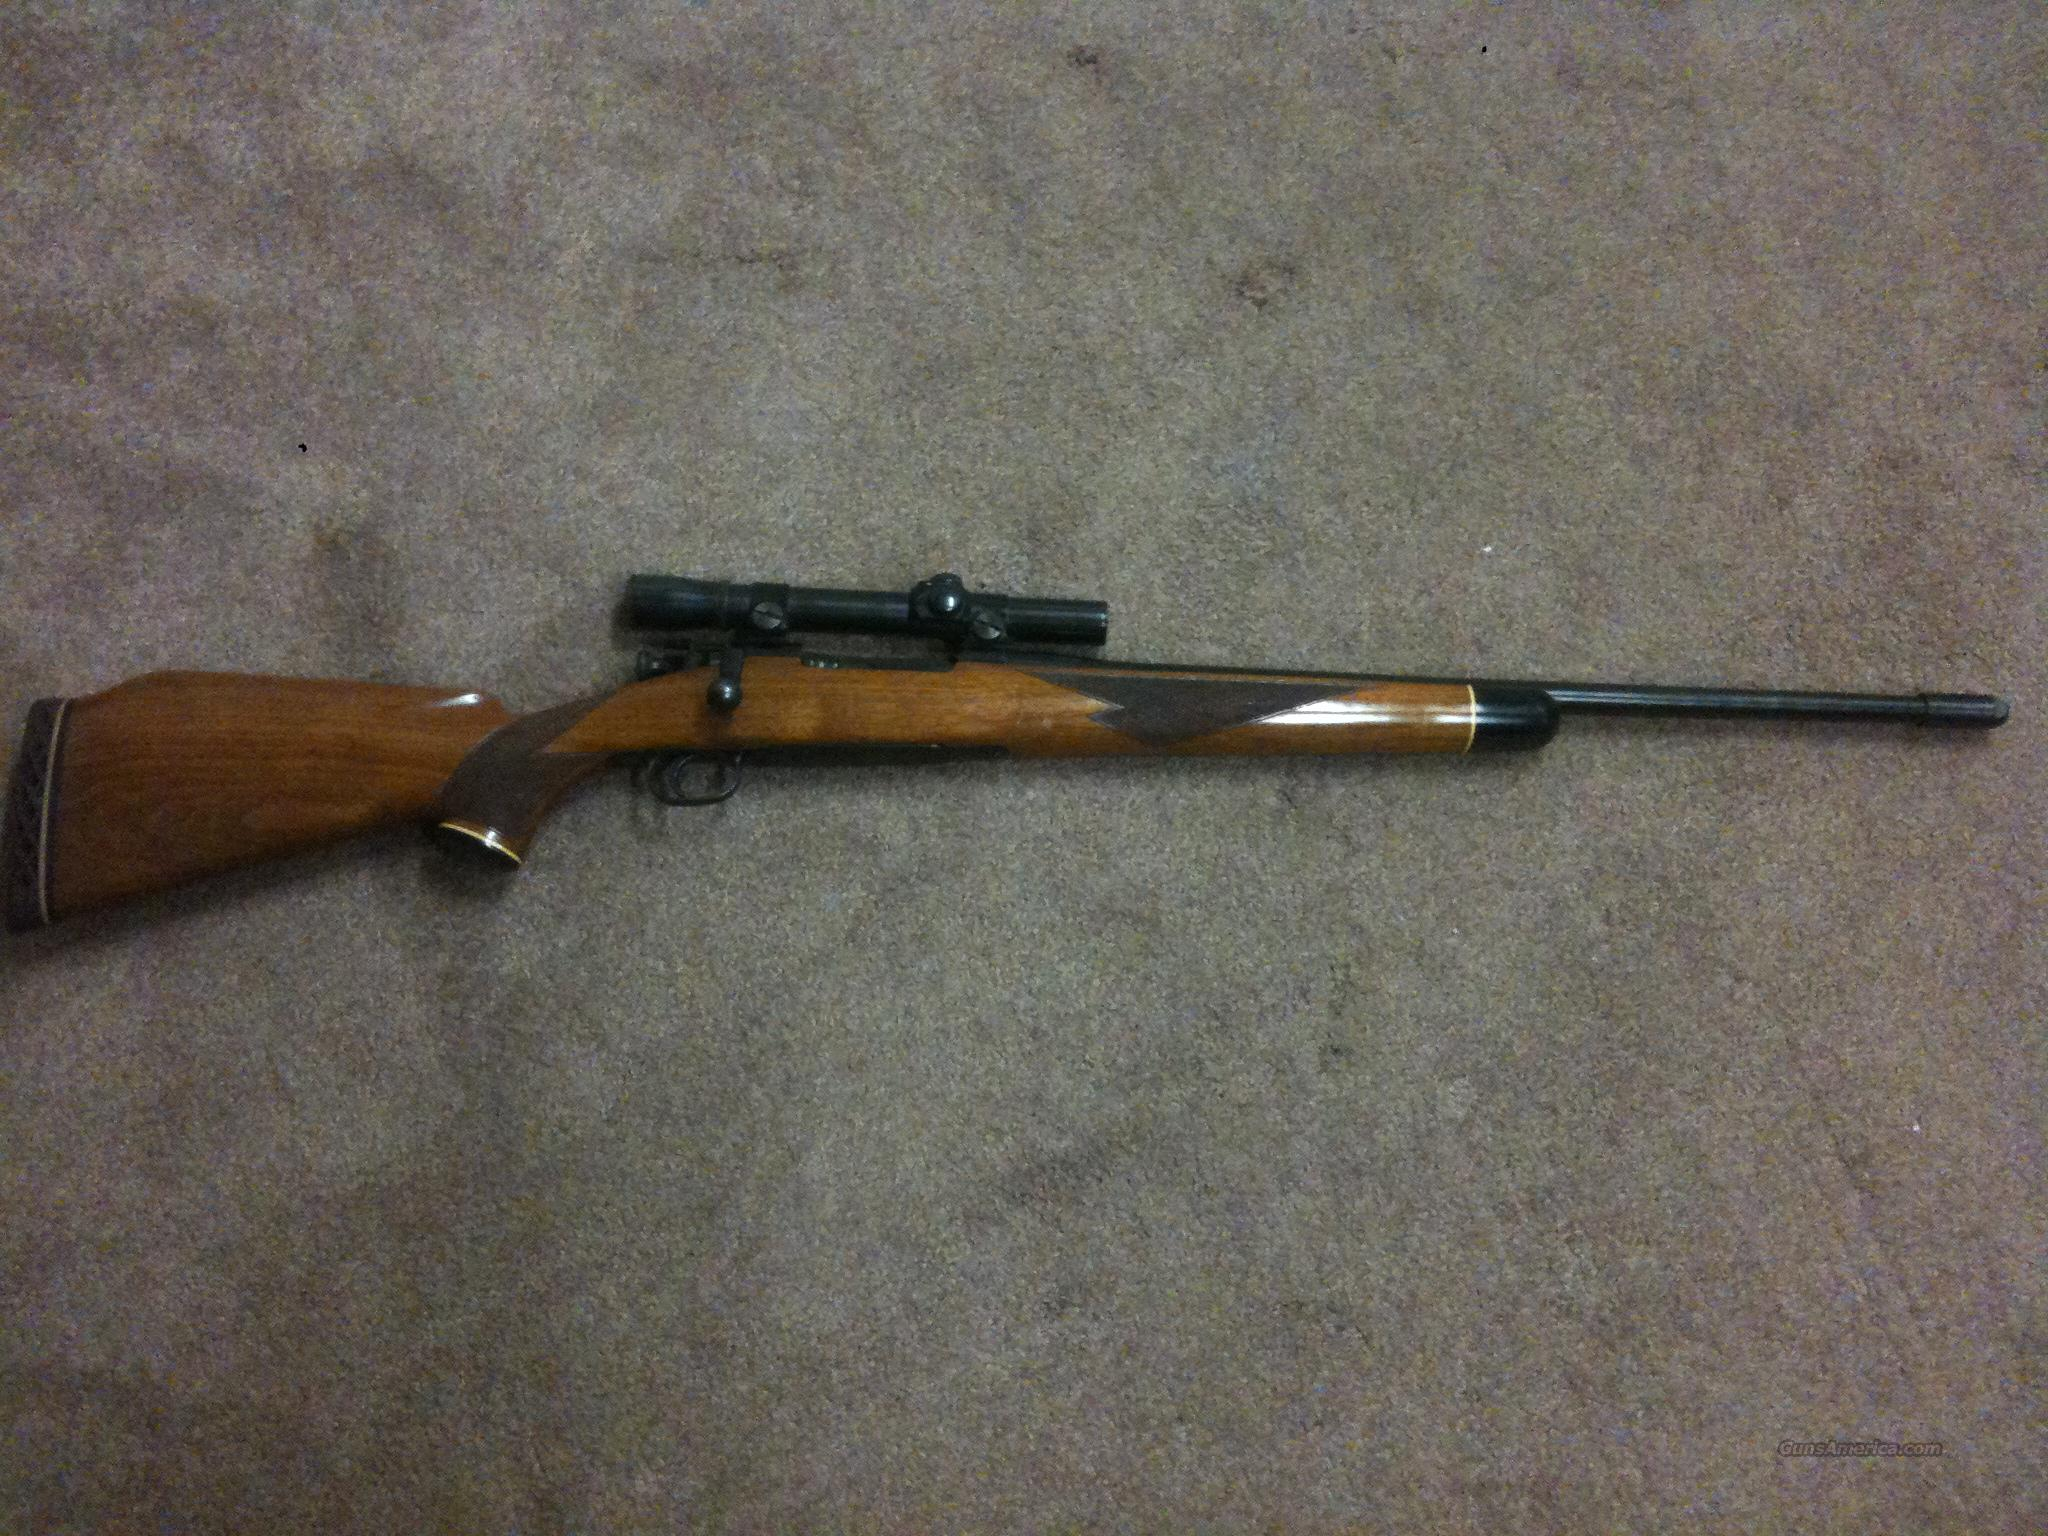 REMINGTON  U.S. MODEL 1903 - 30.06 CAL. SPORTERIZED CUSTOM RIFLE - WITH SCOPE - EXCELLENT CONDITION -   Guns > Rifles > Military Misc. Rifles US > 1903 Springfield/Variants